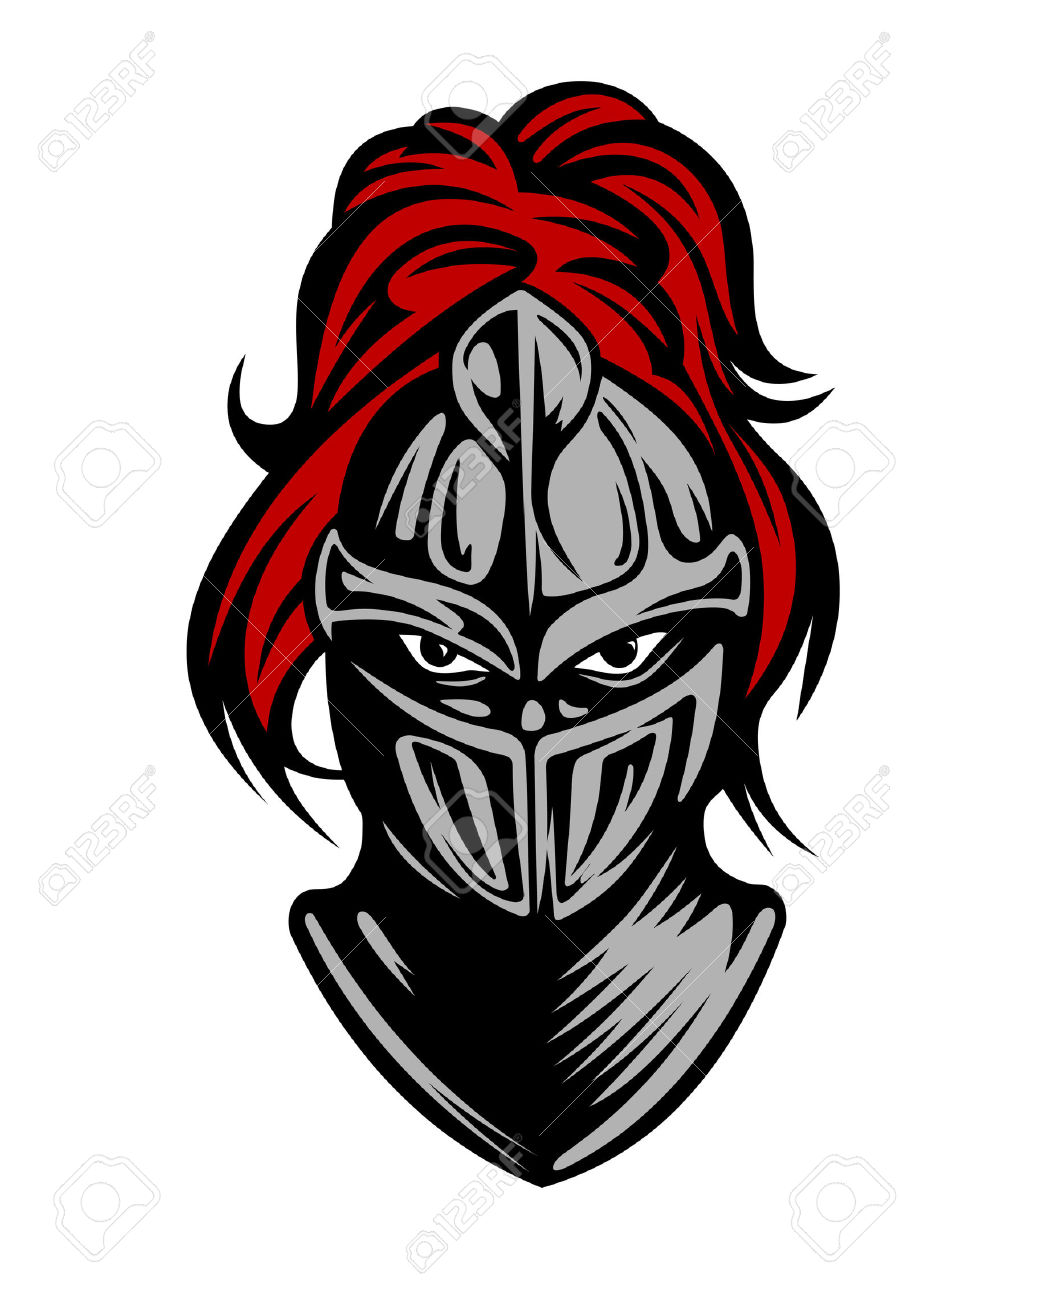 27,049 Knight Stock Vector Illustration And Royalty Free Knight.